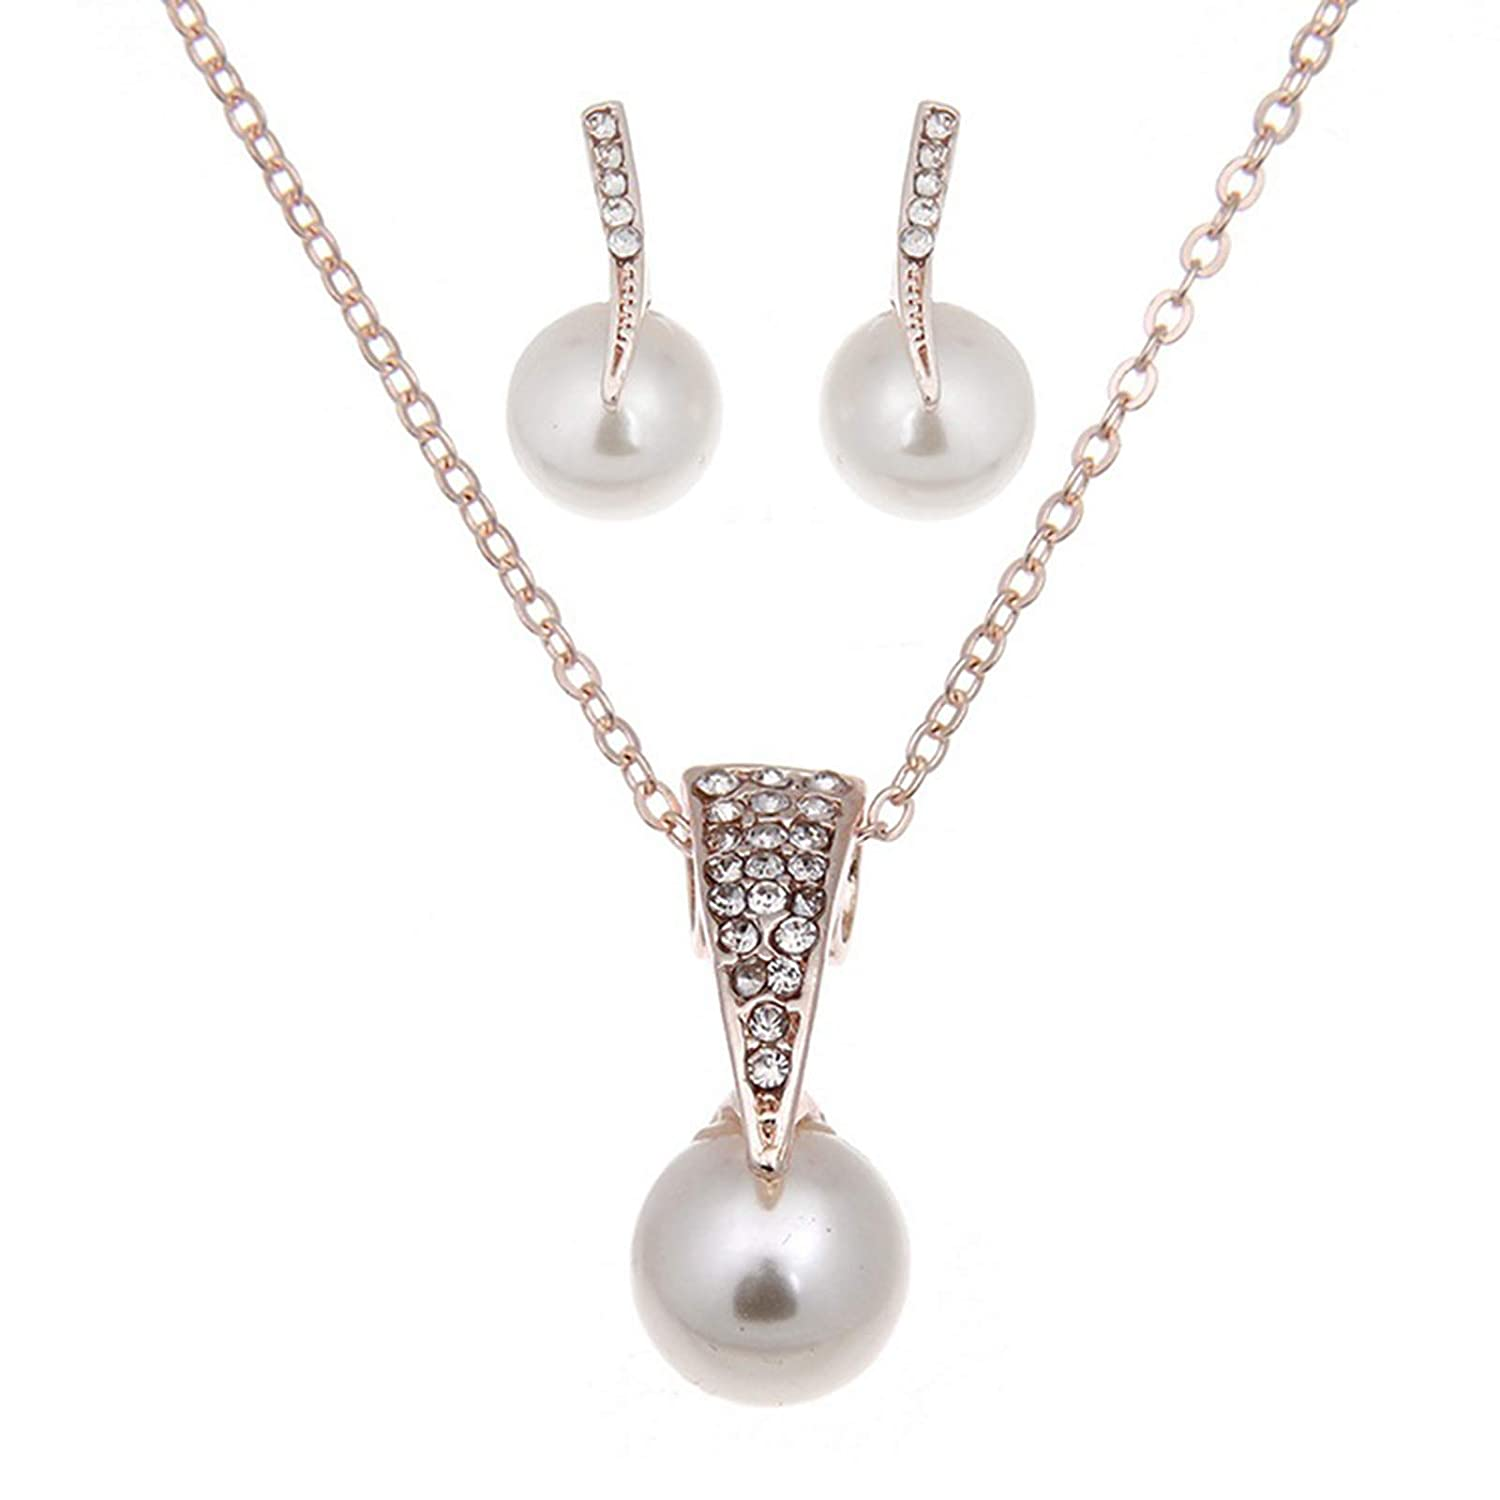 Sttiafay Pearl Pendant Choker Necklace Ball Pearl Stud Earrings Gorgeous Rhinestone Ear Rings Drop Dangle Lariat Necklace 2Pcs Jewelry Set for Women and Girls